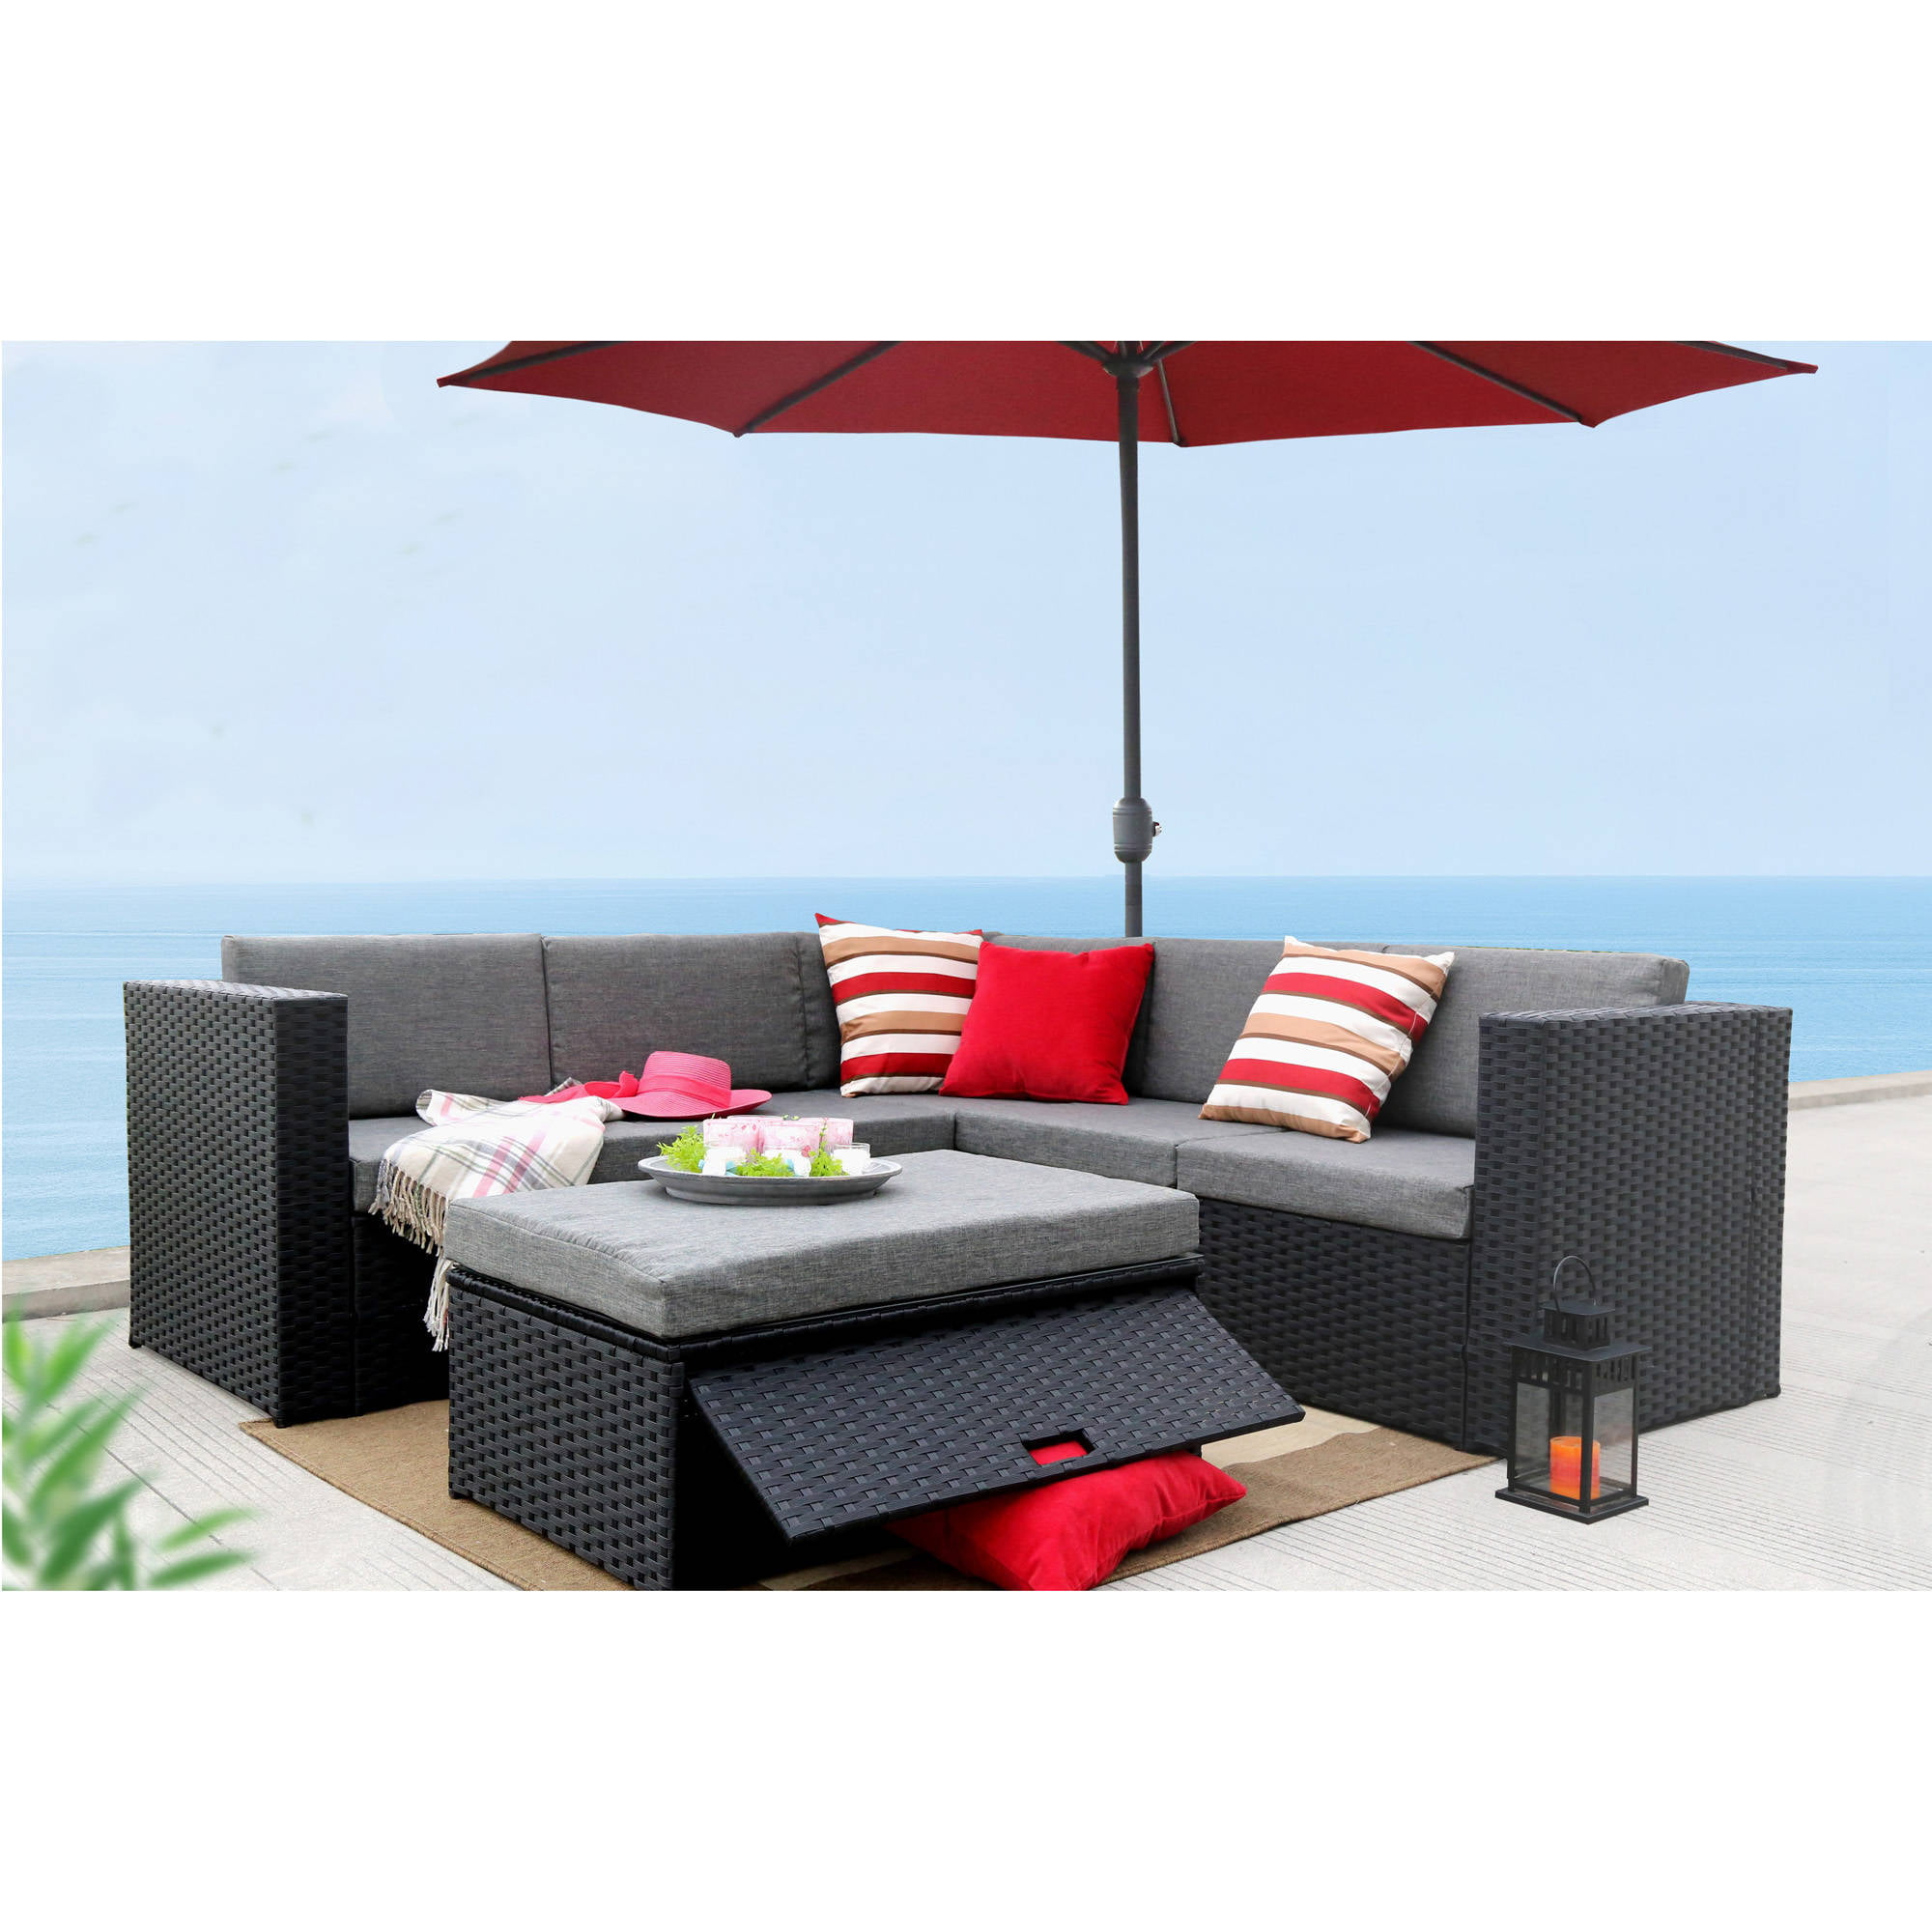 Baner Garden Outdoor Furniture Complete Patio PE Wicker Rattan Garden Corner Sofa Couch Set, Black, 4 Pieces by Caesar Hardware